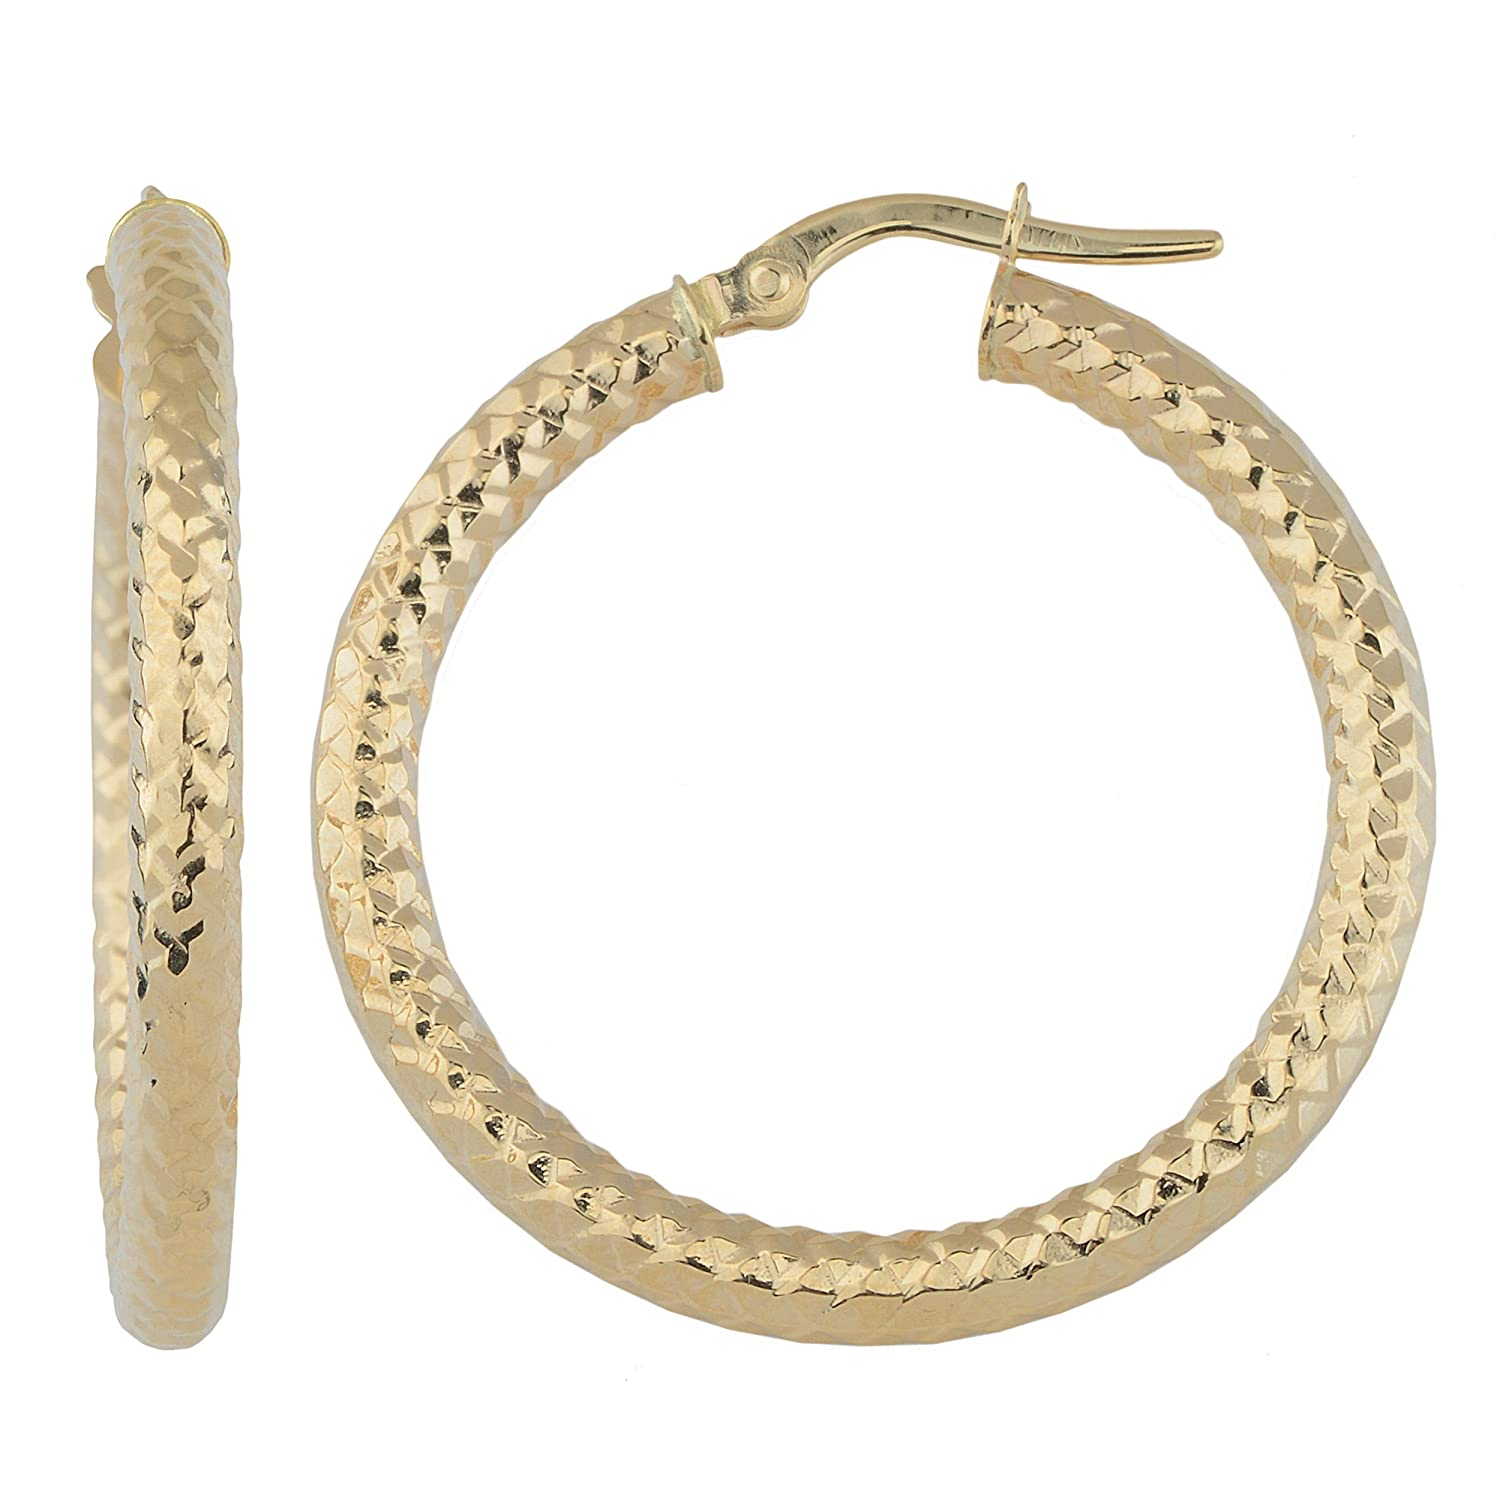 14k Gold 3x25mm Diamond-cut Finished Round Hoop Earrings (yellow gold or white gold)